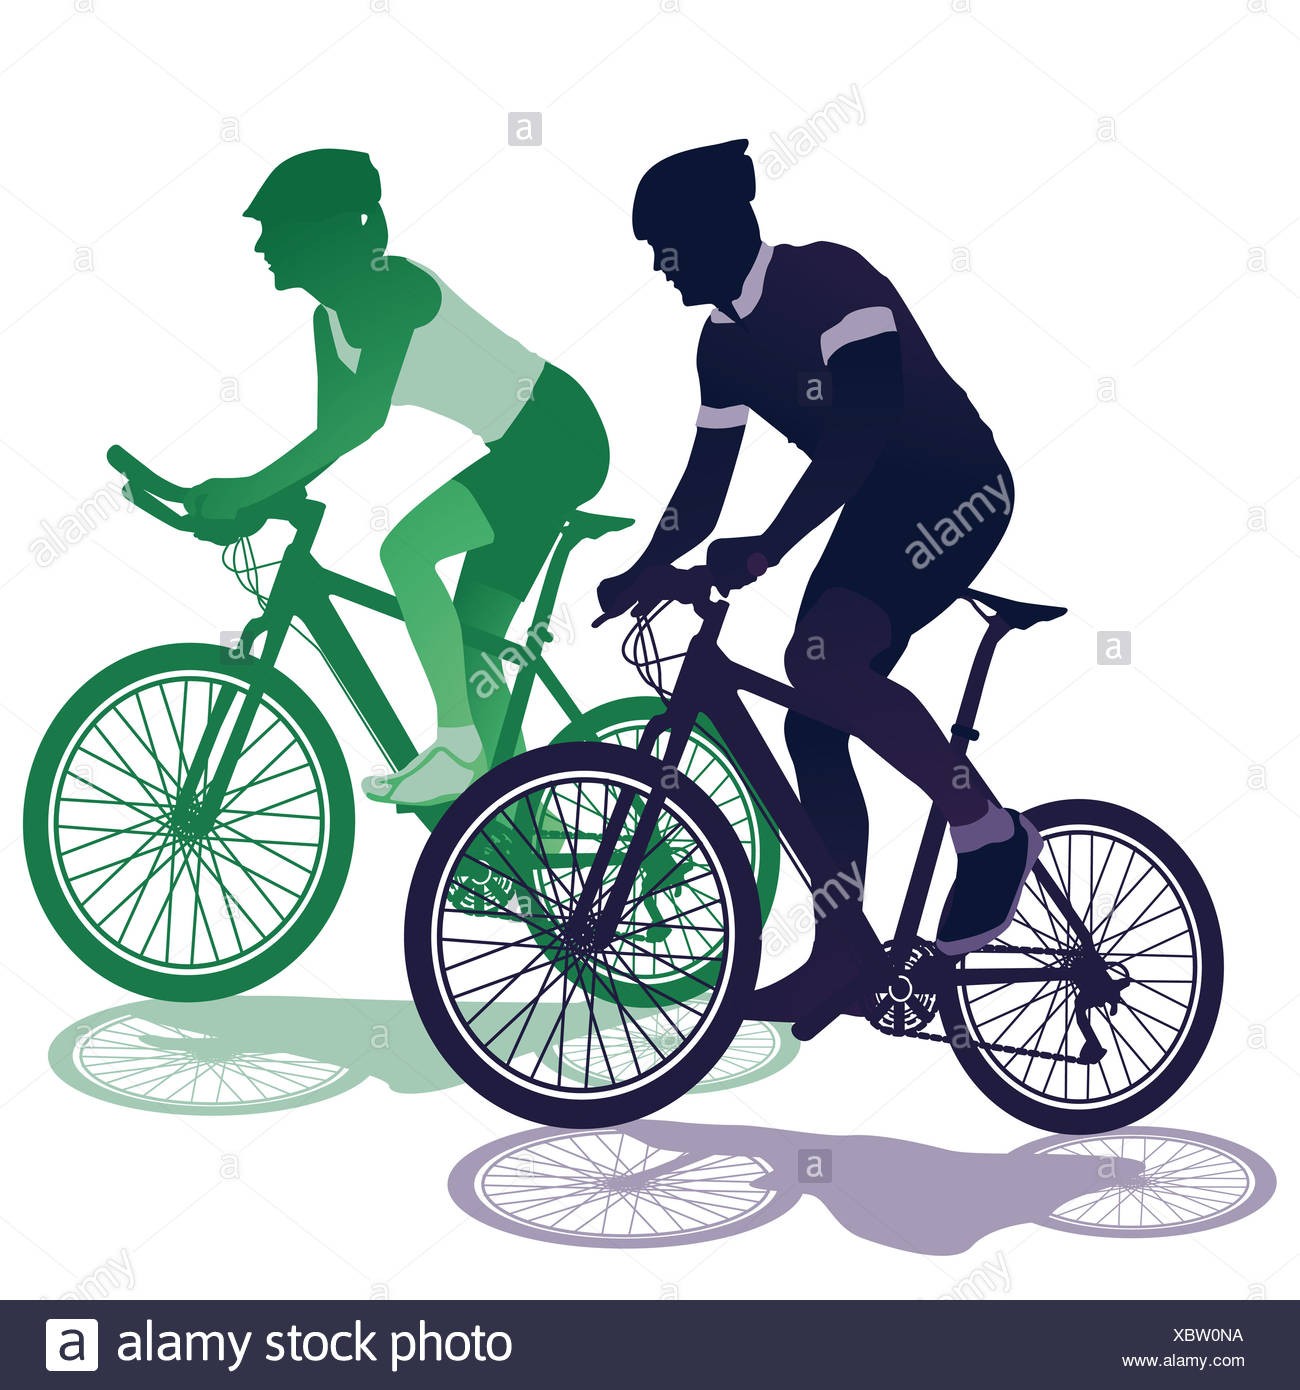 a couple on a bicycle - Stock Image